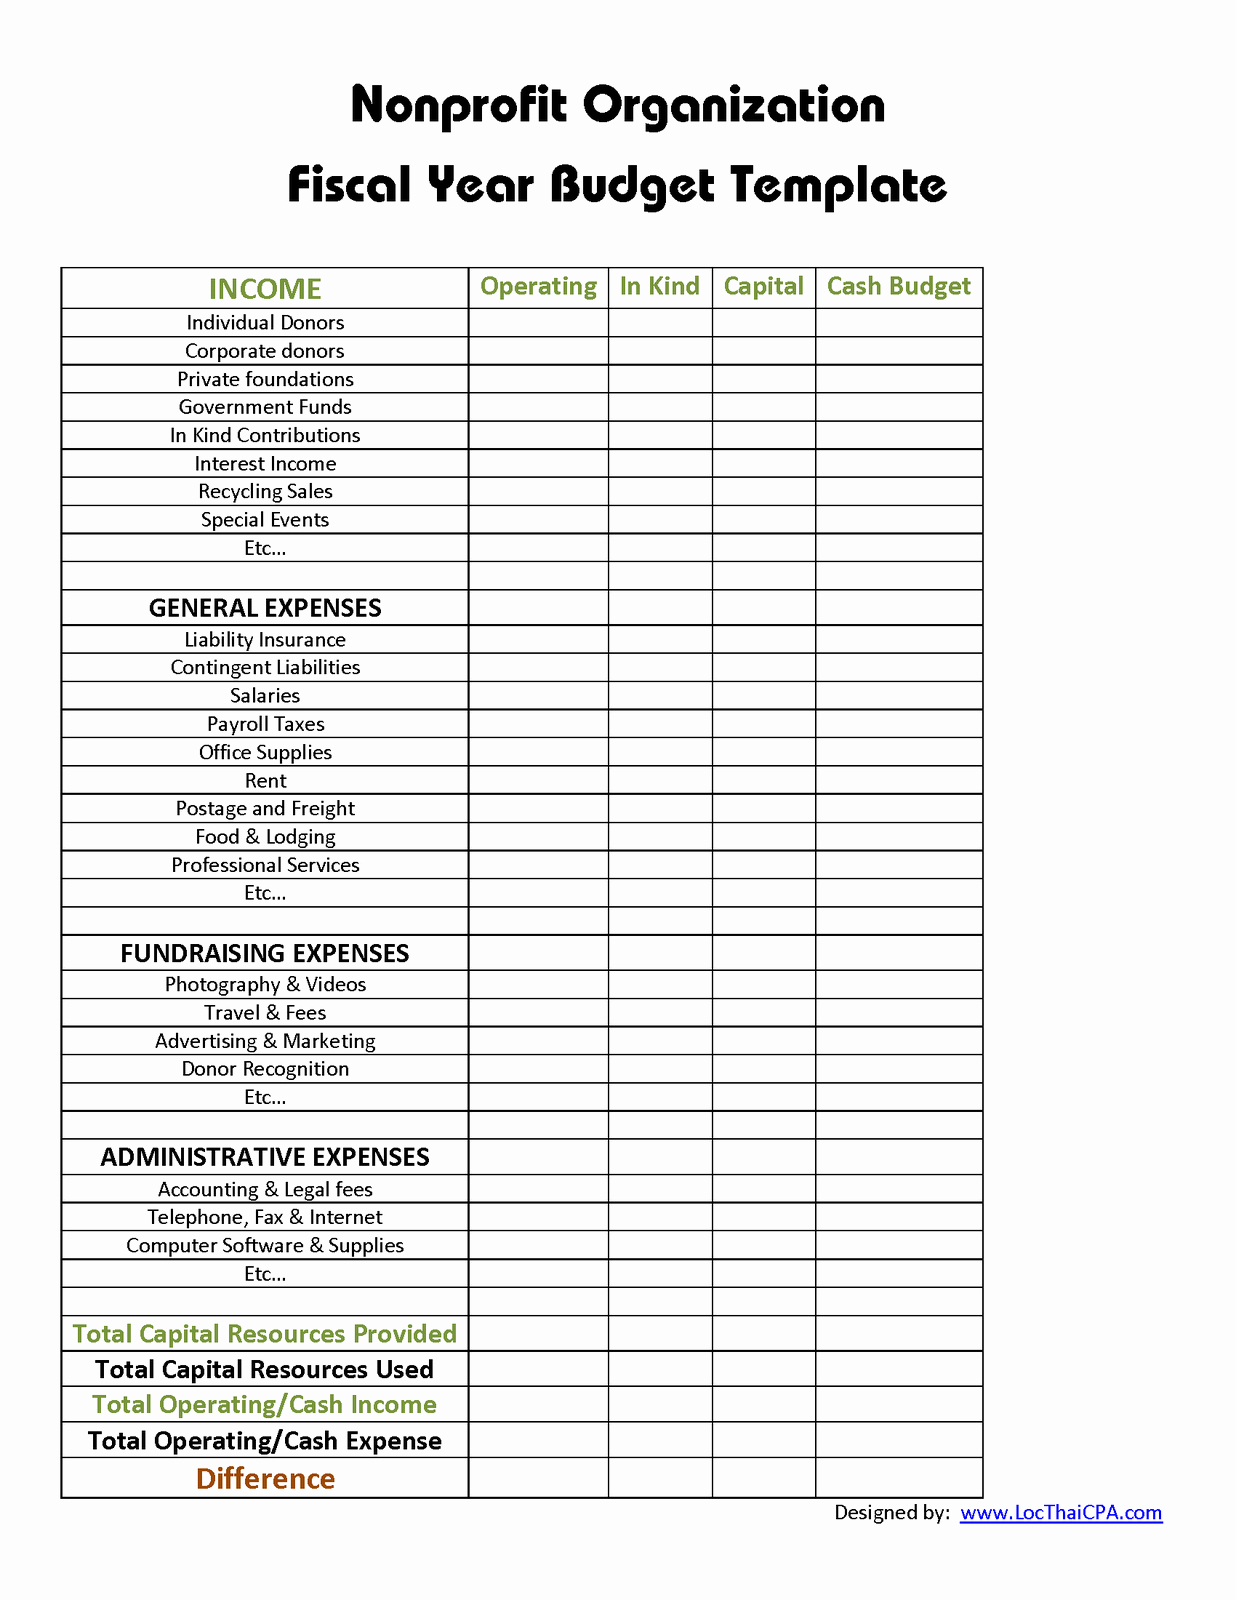 Non Profit Budget Template Fresh Non Profit Bud Template at Home